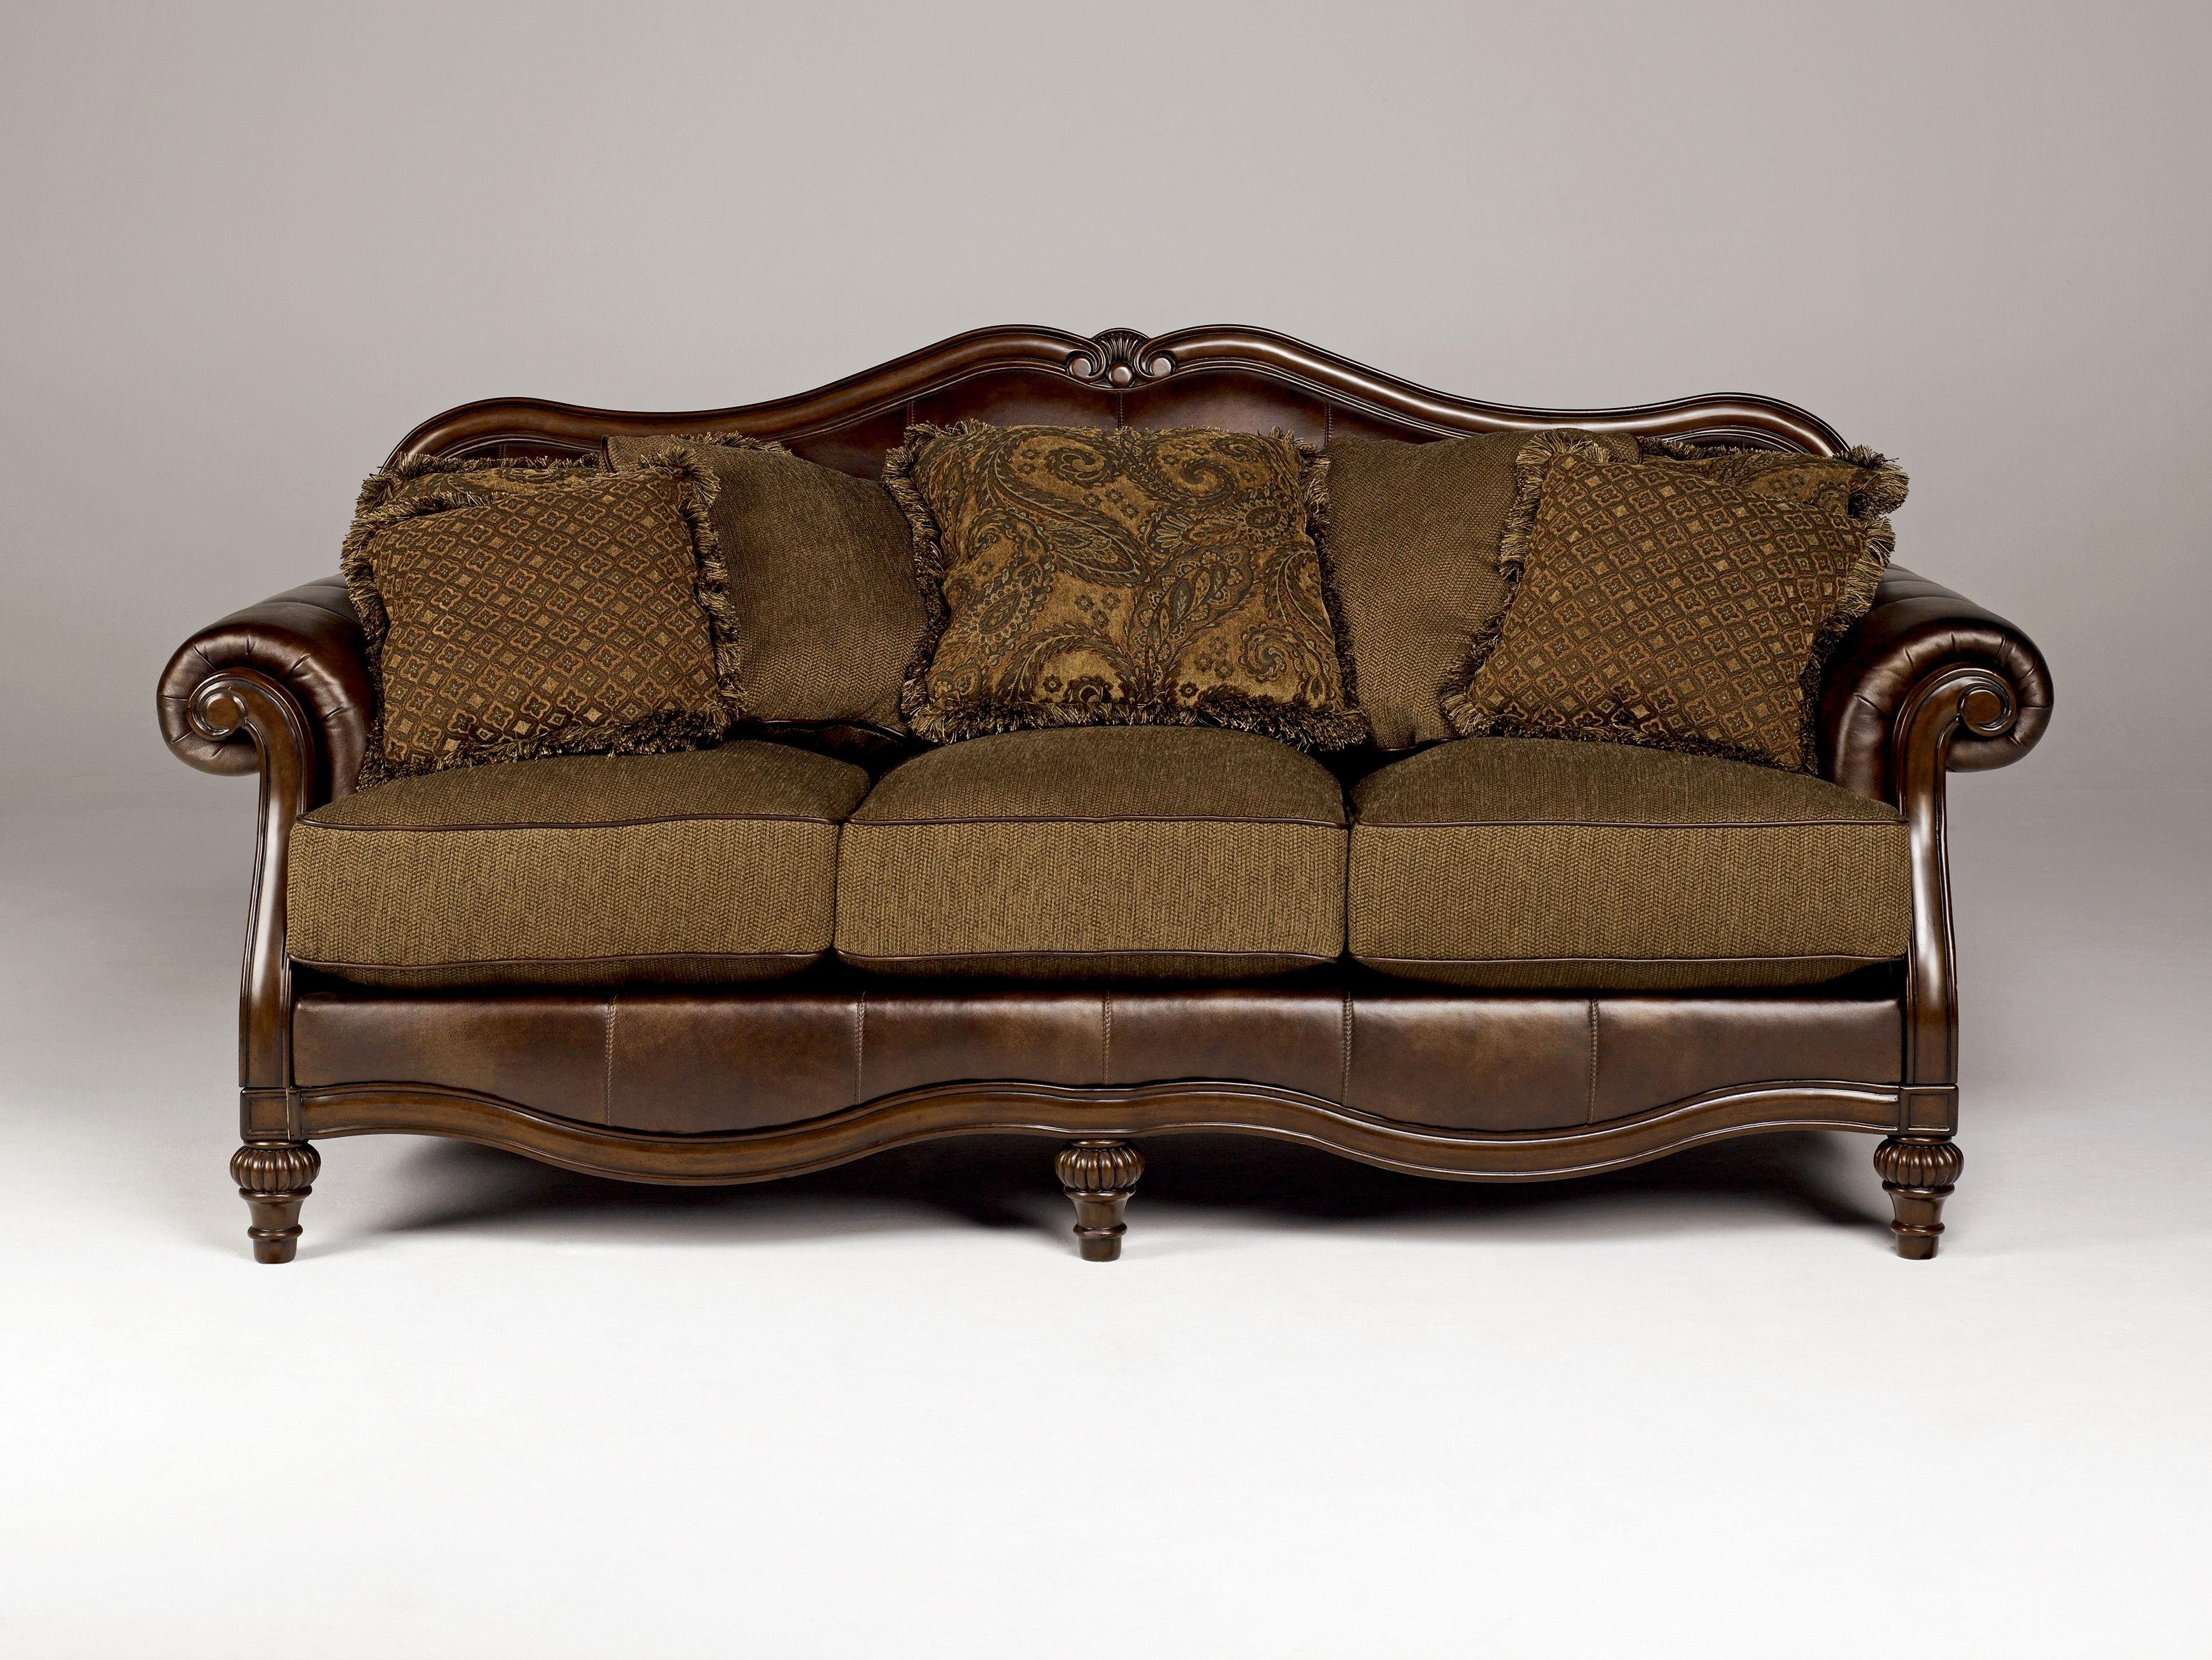 20 Best Collection Of Traditional Sofas And Chairs Sofa